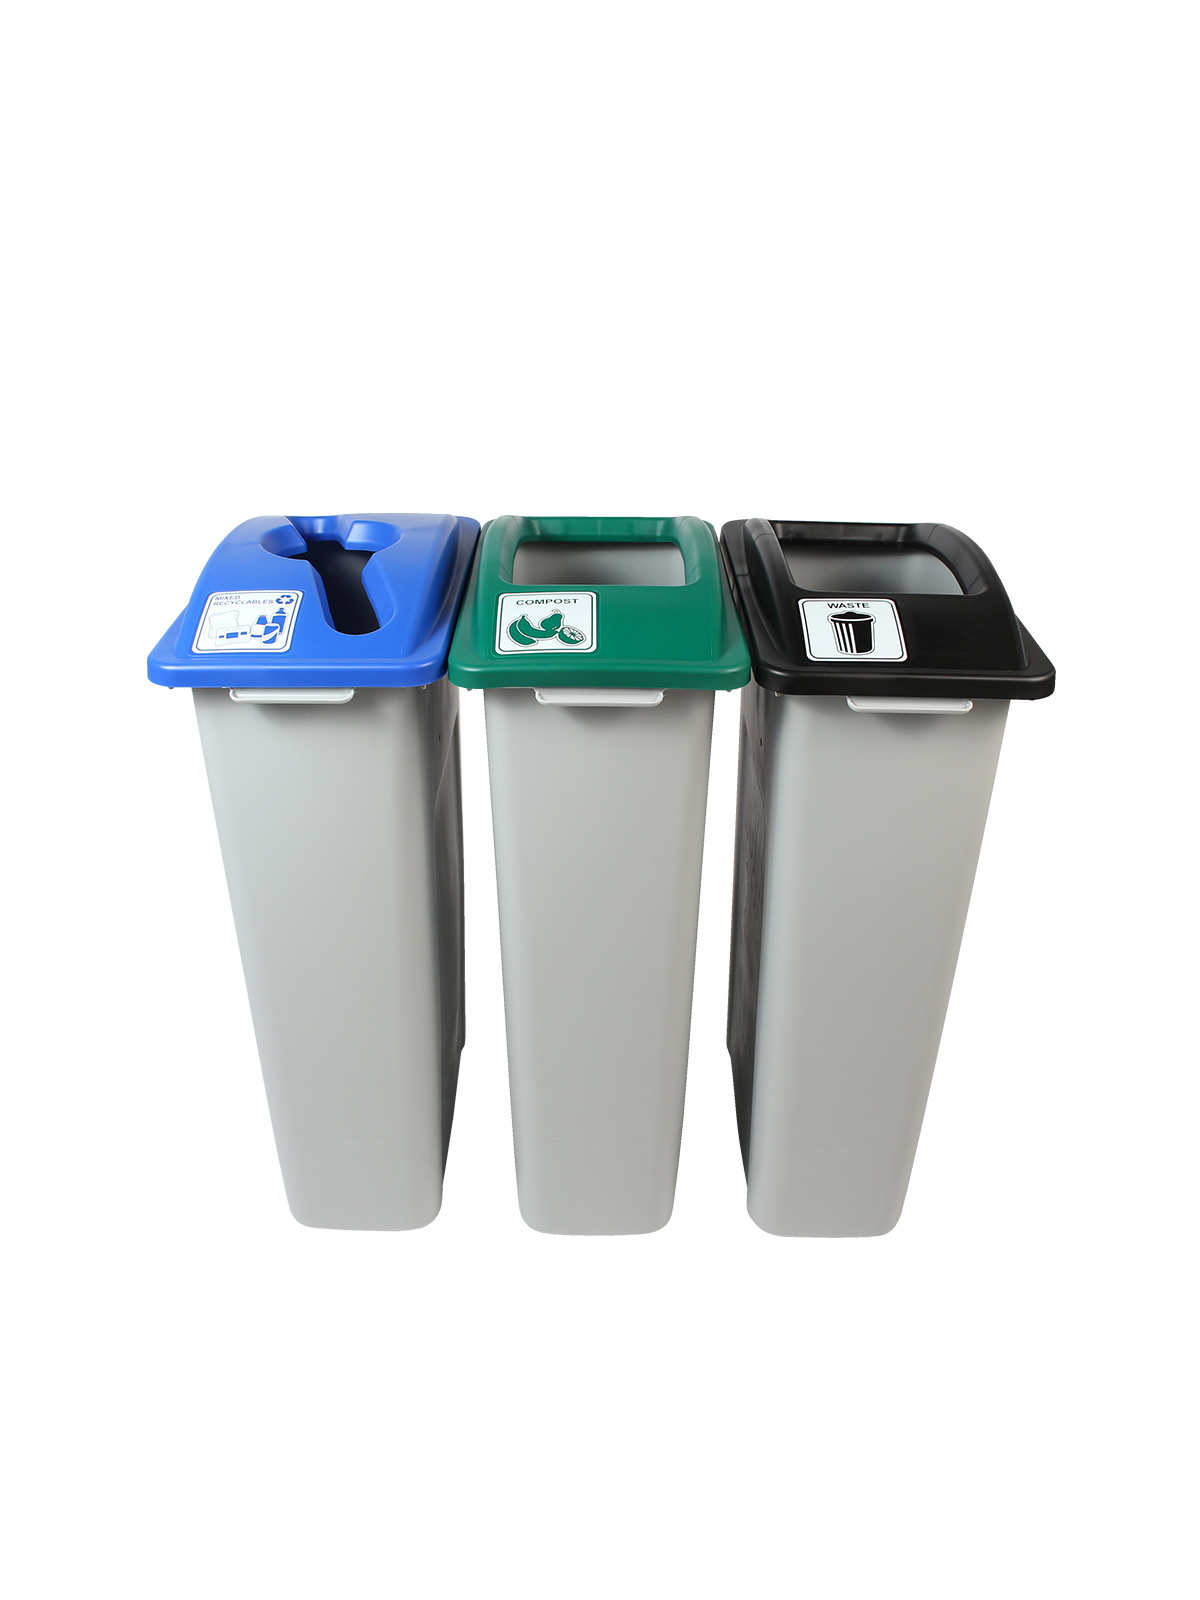 WASTE WATCHER - Triple - Mixed Recyclables-Compost-Waste - Mixed-Full - Grey-Blue-Green-Black